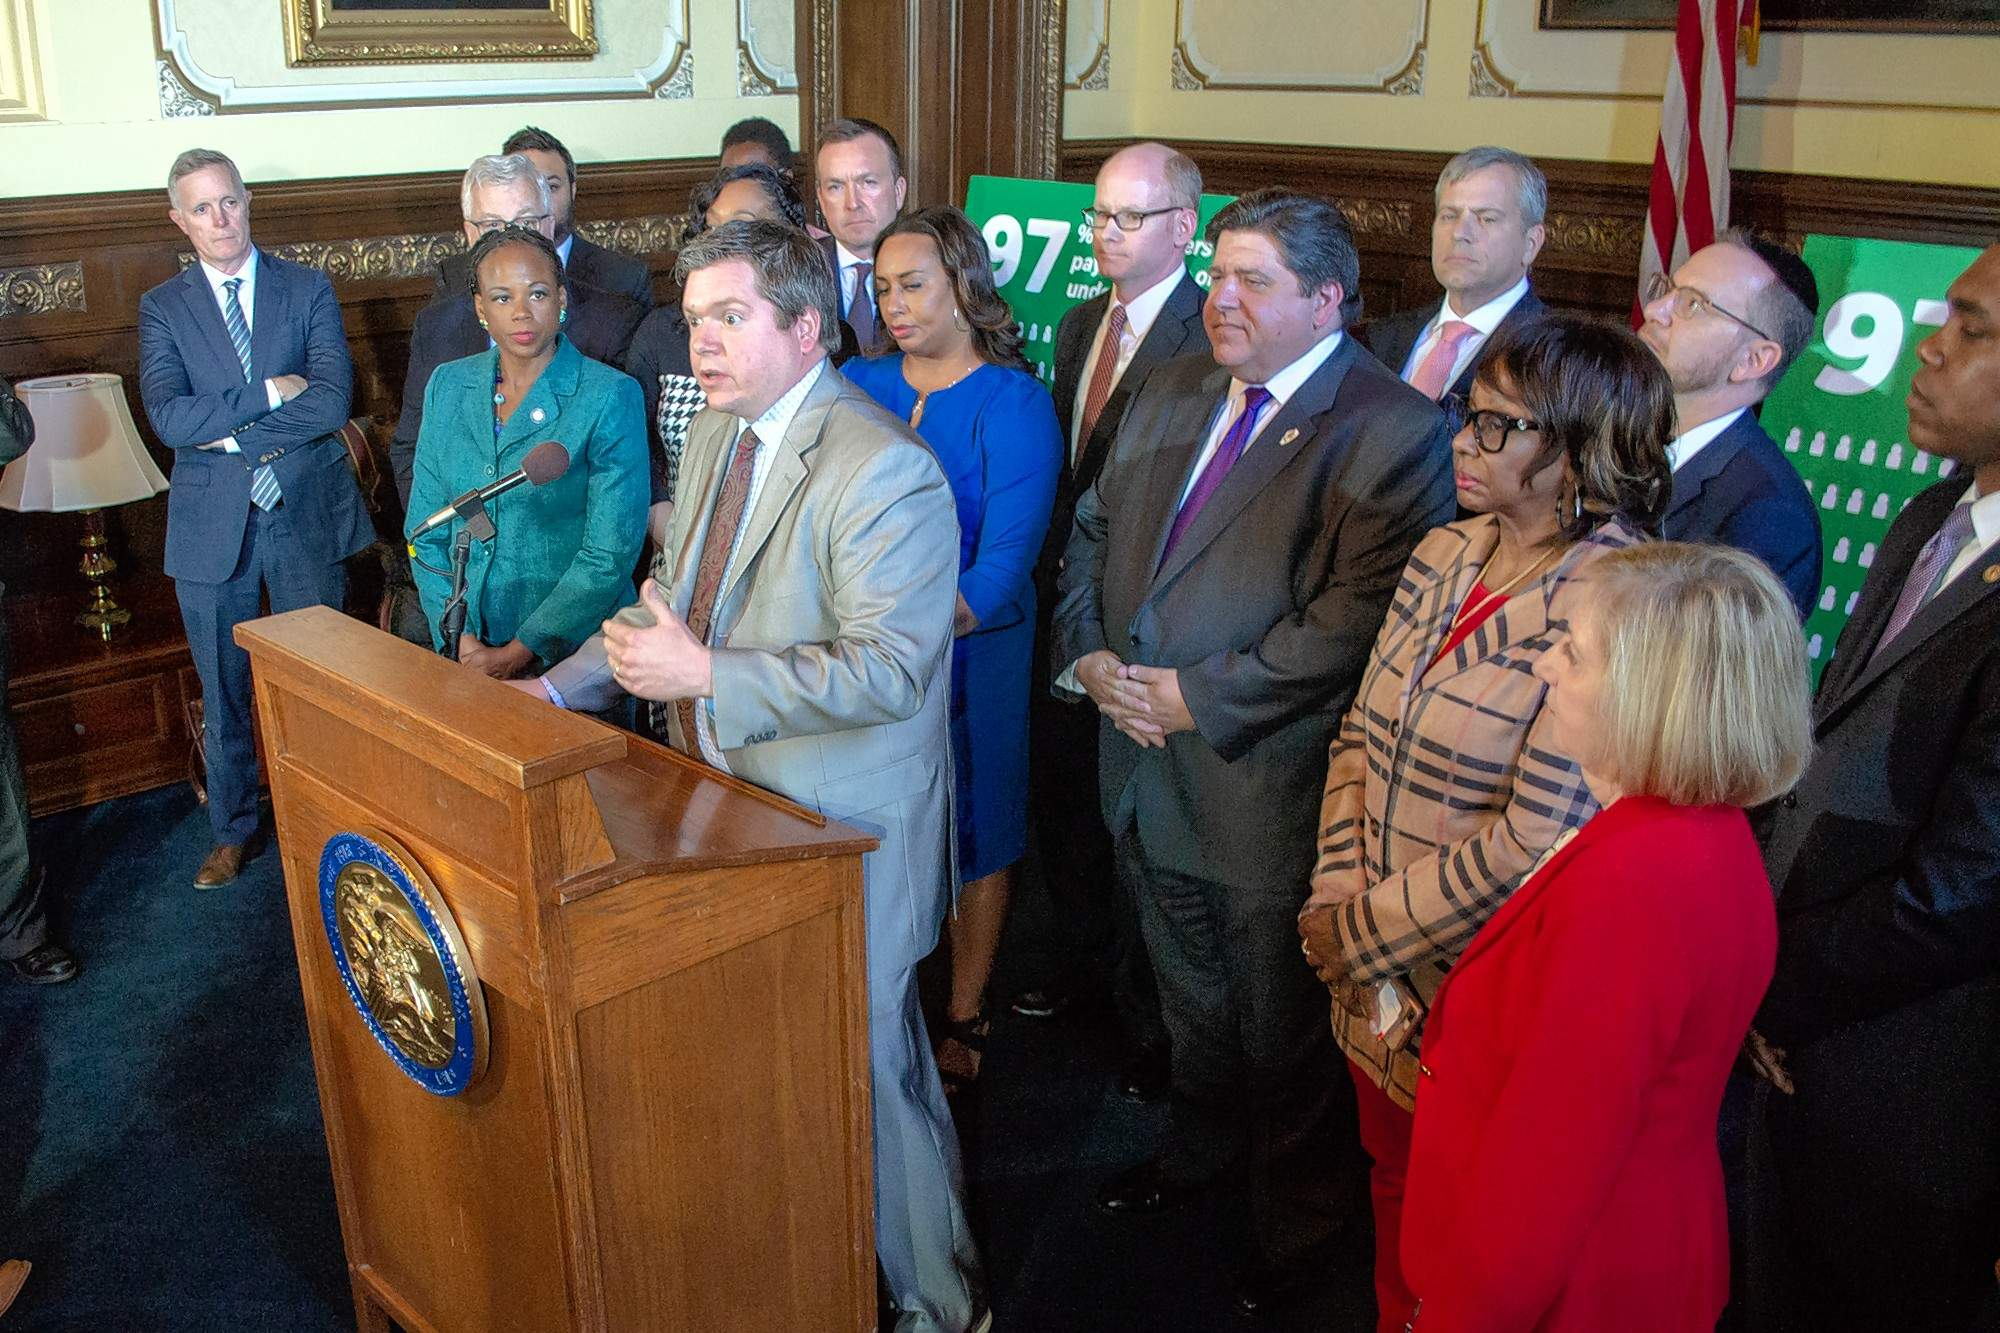 Rep. Mike Zalewski, a Riverside Democrat, talks to reporters during a news conference April 9 in Springfield. Zalewski is the House sponsor of a $2.44 billion plan to pay for state transportation infrastructure improvements that hinges on a hike in the motor fuel tax, vehicle registrations and fees. House Bill 391 advanced to the full House out of the Revenue and Finance Committee on Wednesday.